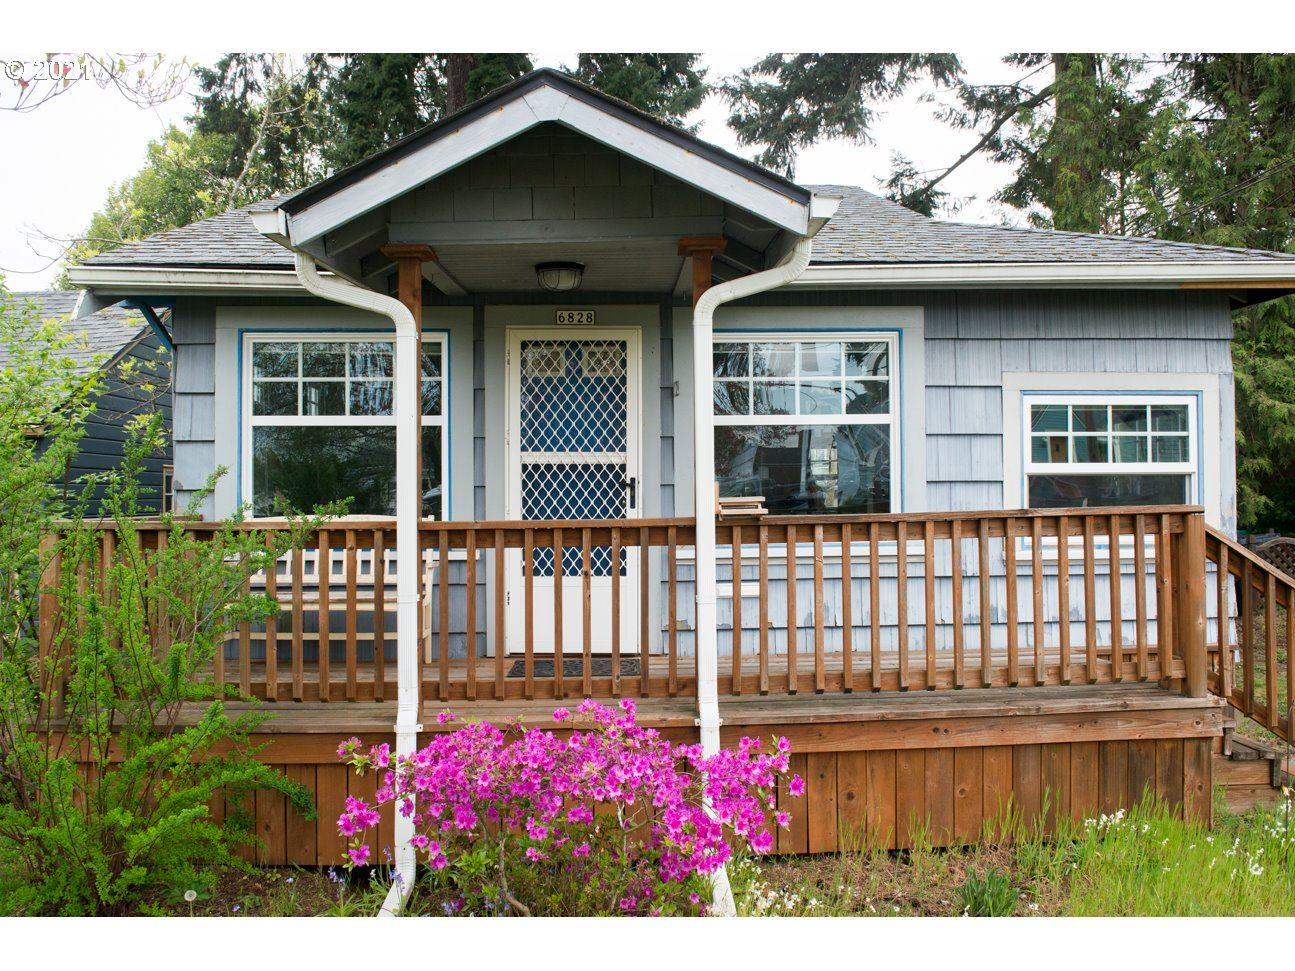 6828 N CAMPBELL AVE, Portland, OR 97217 - MLS#: 21090563